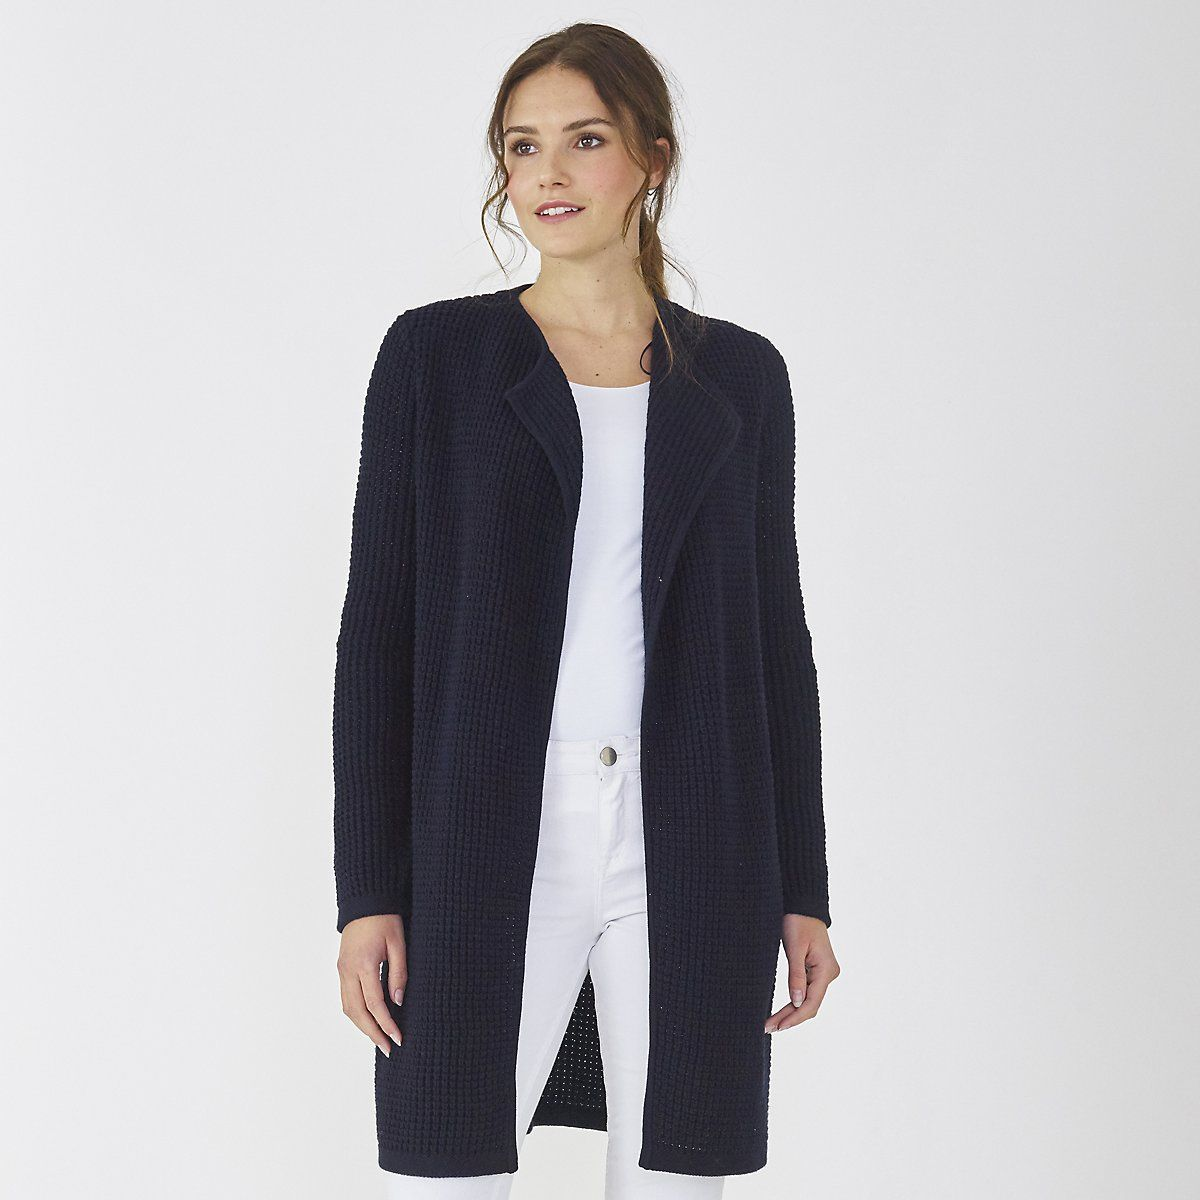 Thermal Stitch Waterfall Cardigan | The White Company US. Made ...